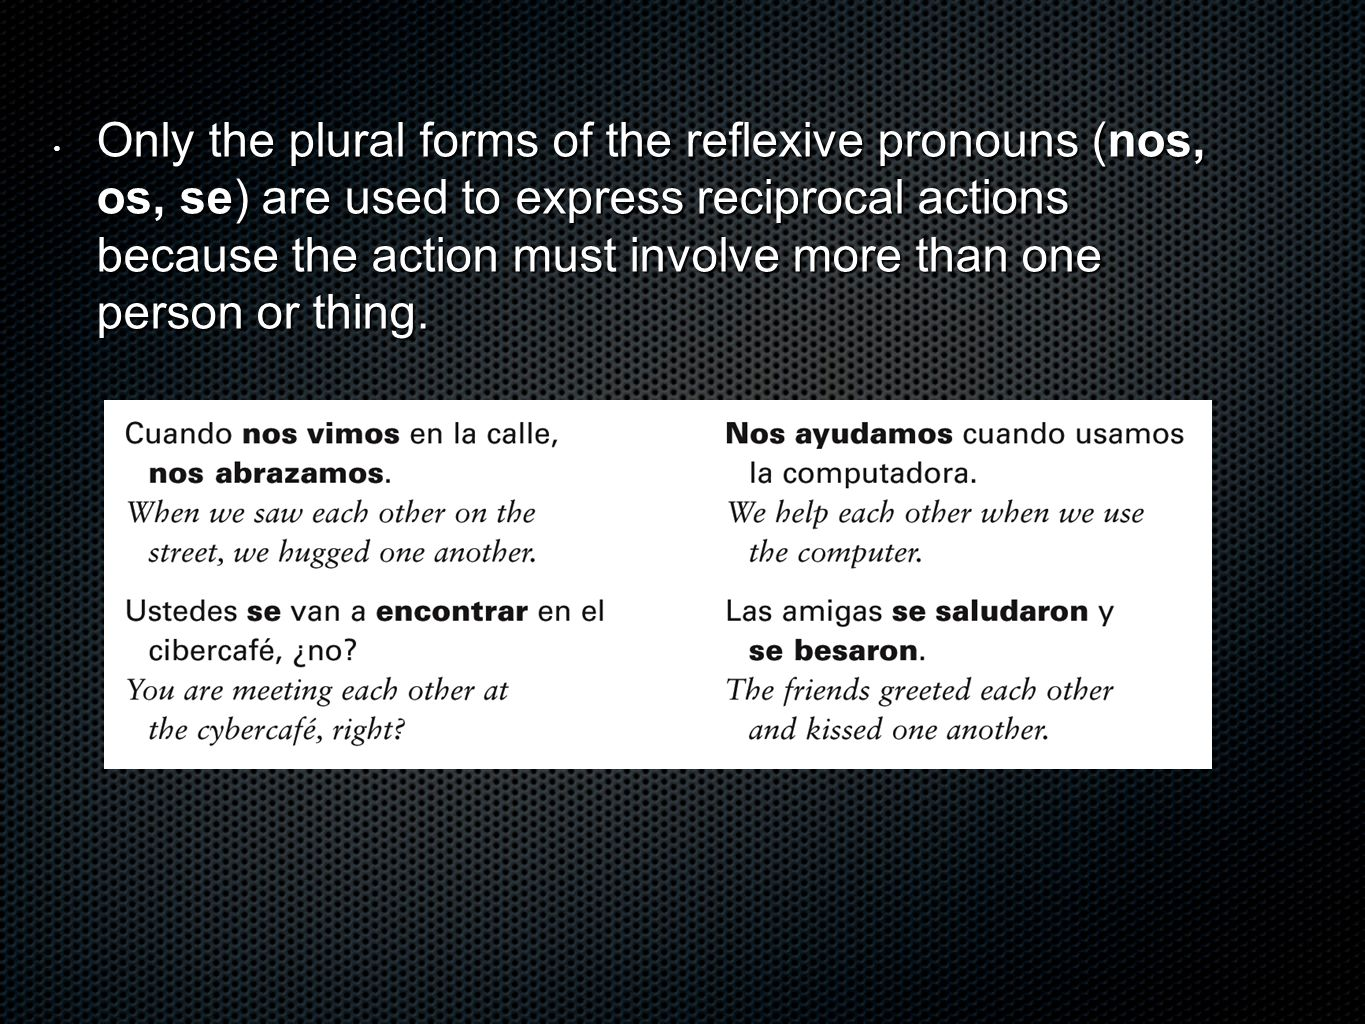 Only the plural forms of the reflexive pronouns (nos, os, se) are used to express reciprocal actions because the action must involve more than one per